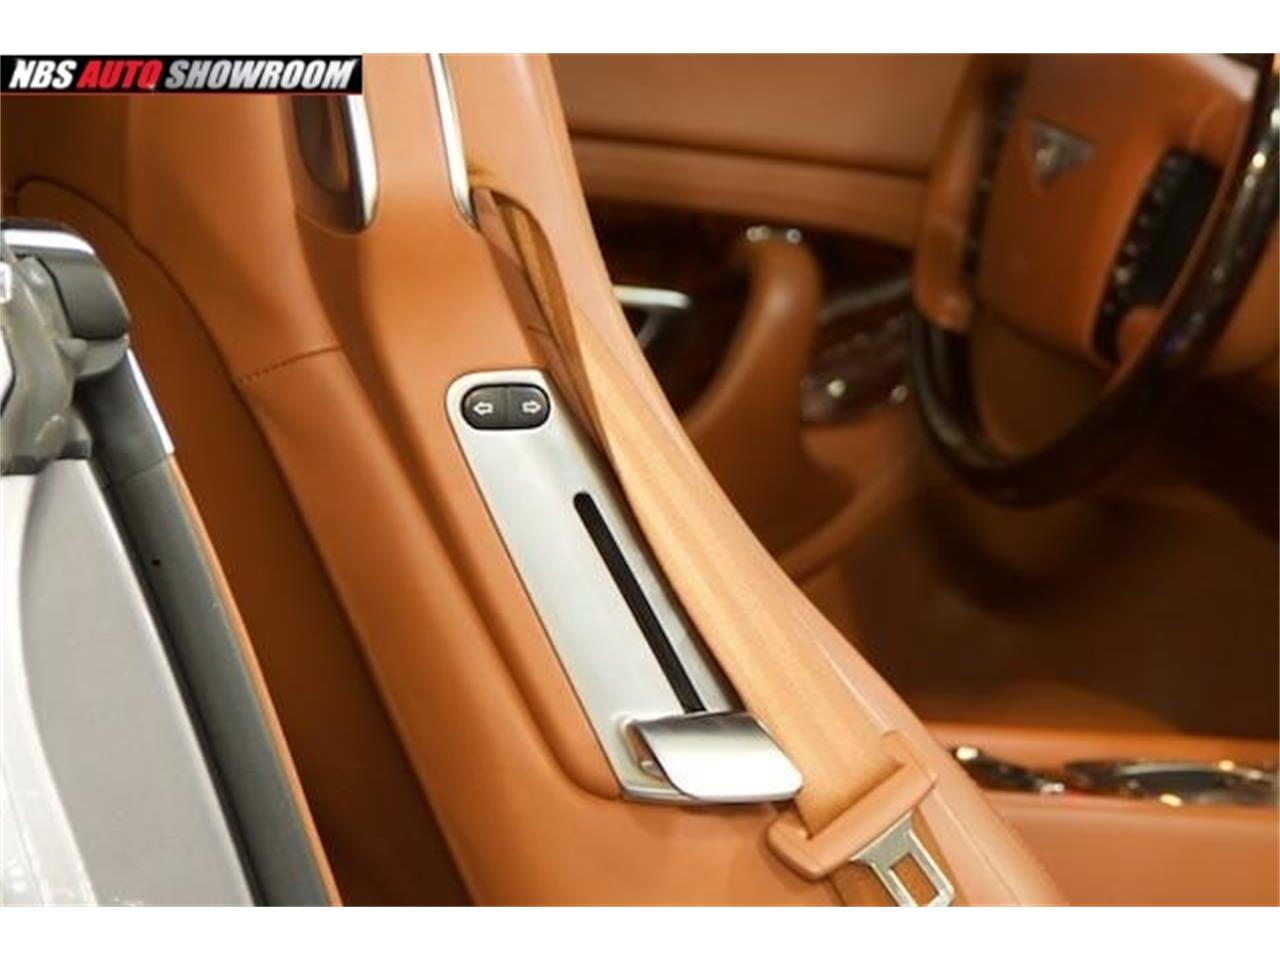 Large Picture of '06 Continental - $41,000.00 Offered by NBS Auto Showroom - L512